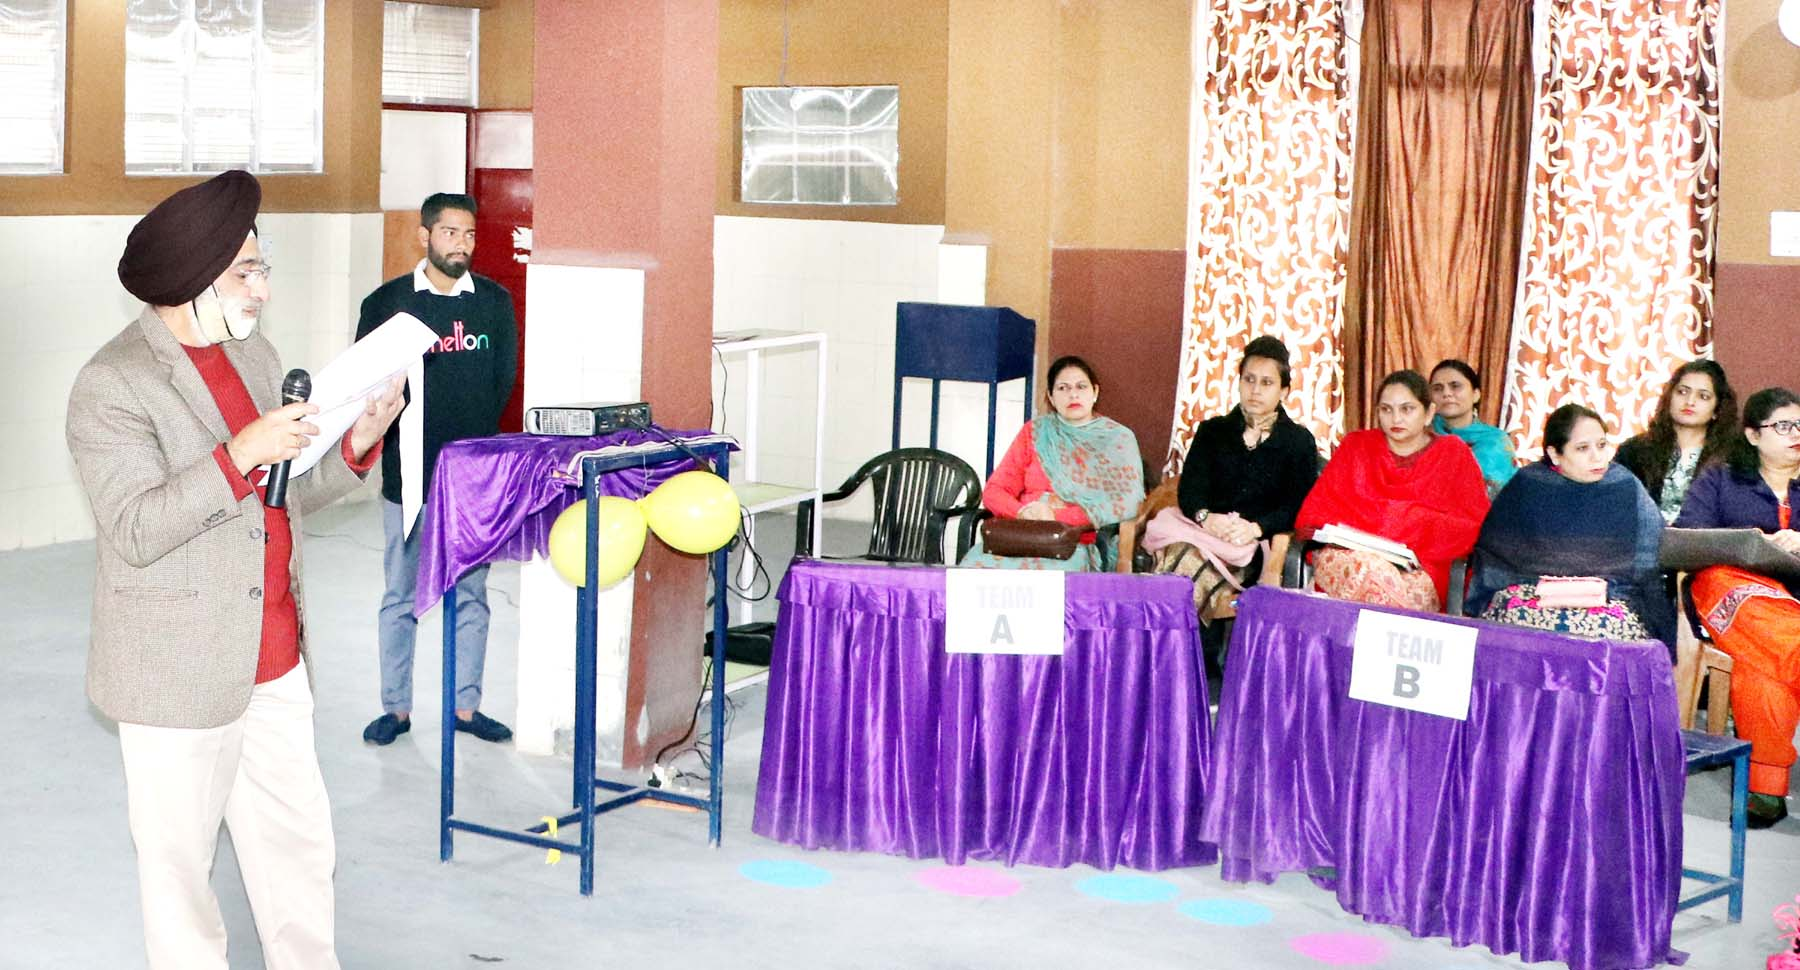 Quiz Master being listened carefully by the students at Shiksha Niketan School in Jammu.